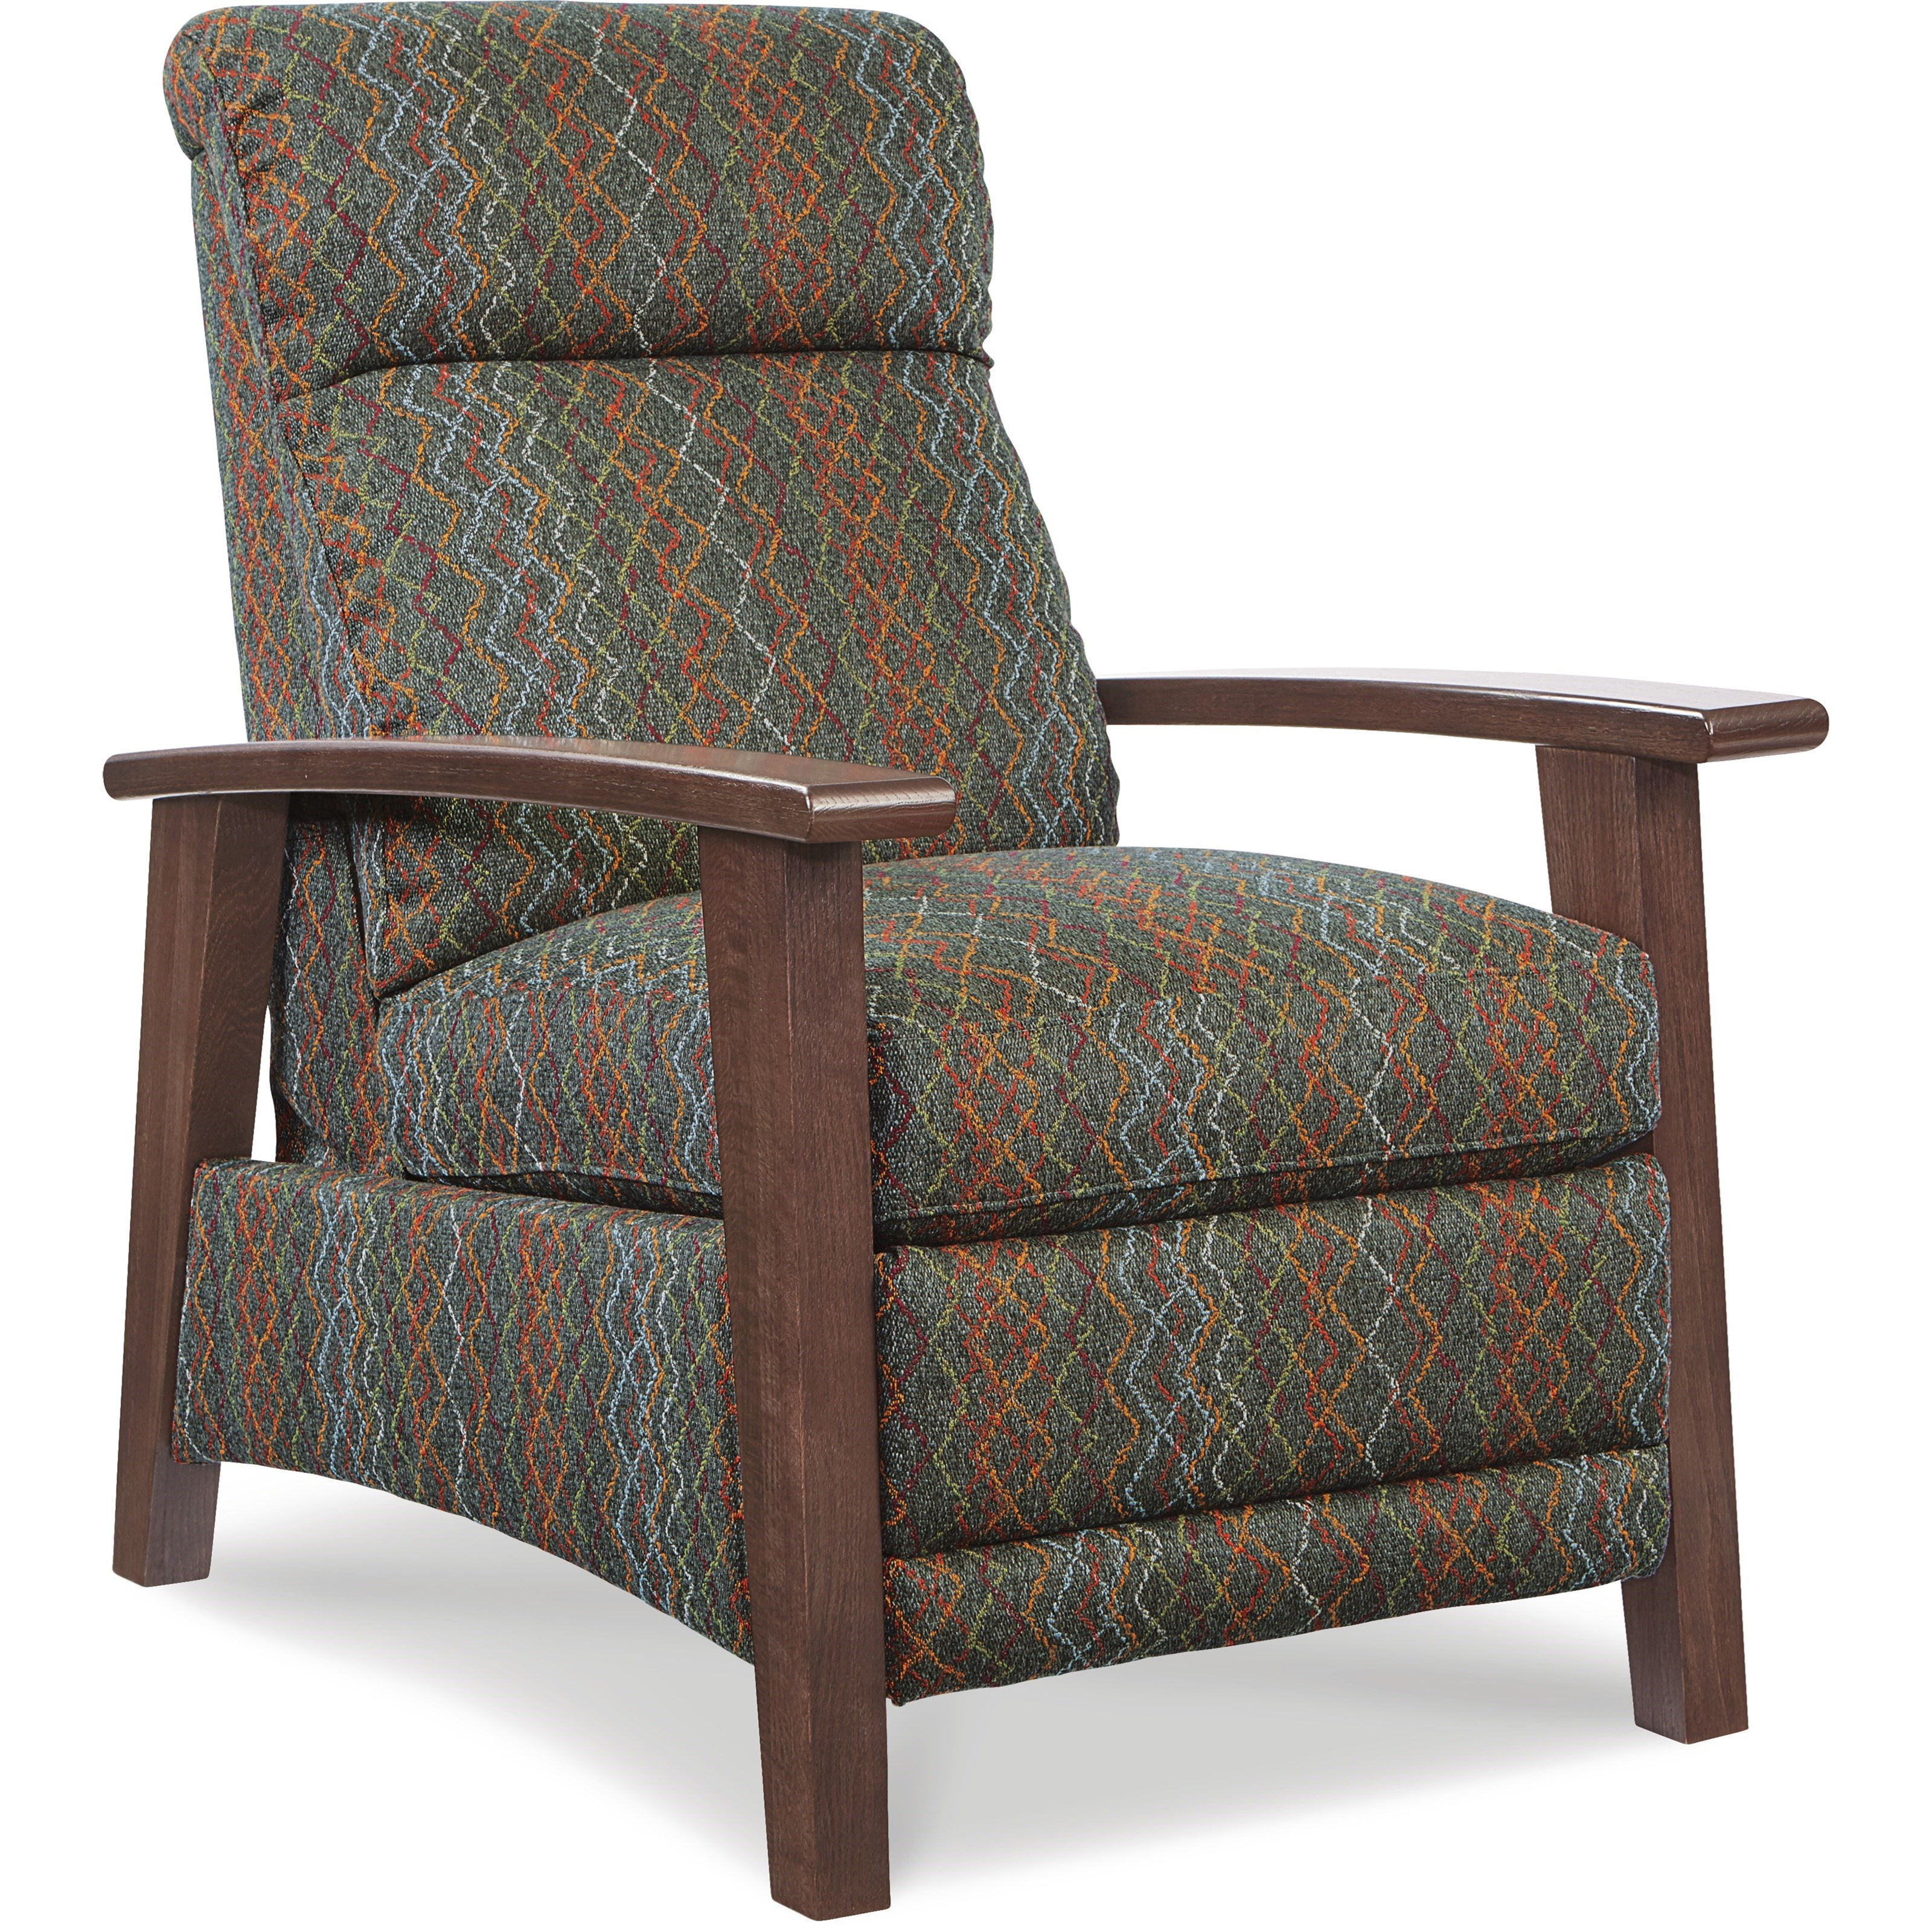 Nouveau Modern Recliner with Wood Arms